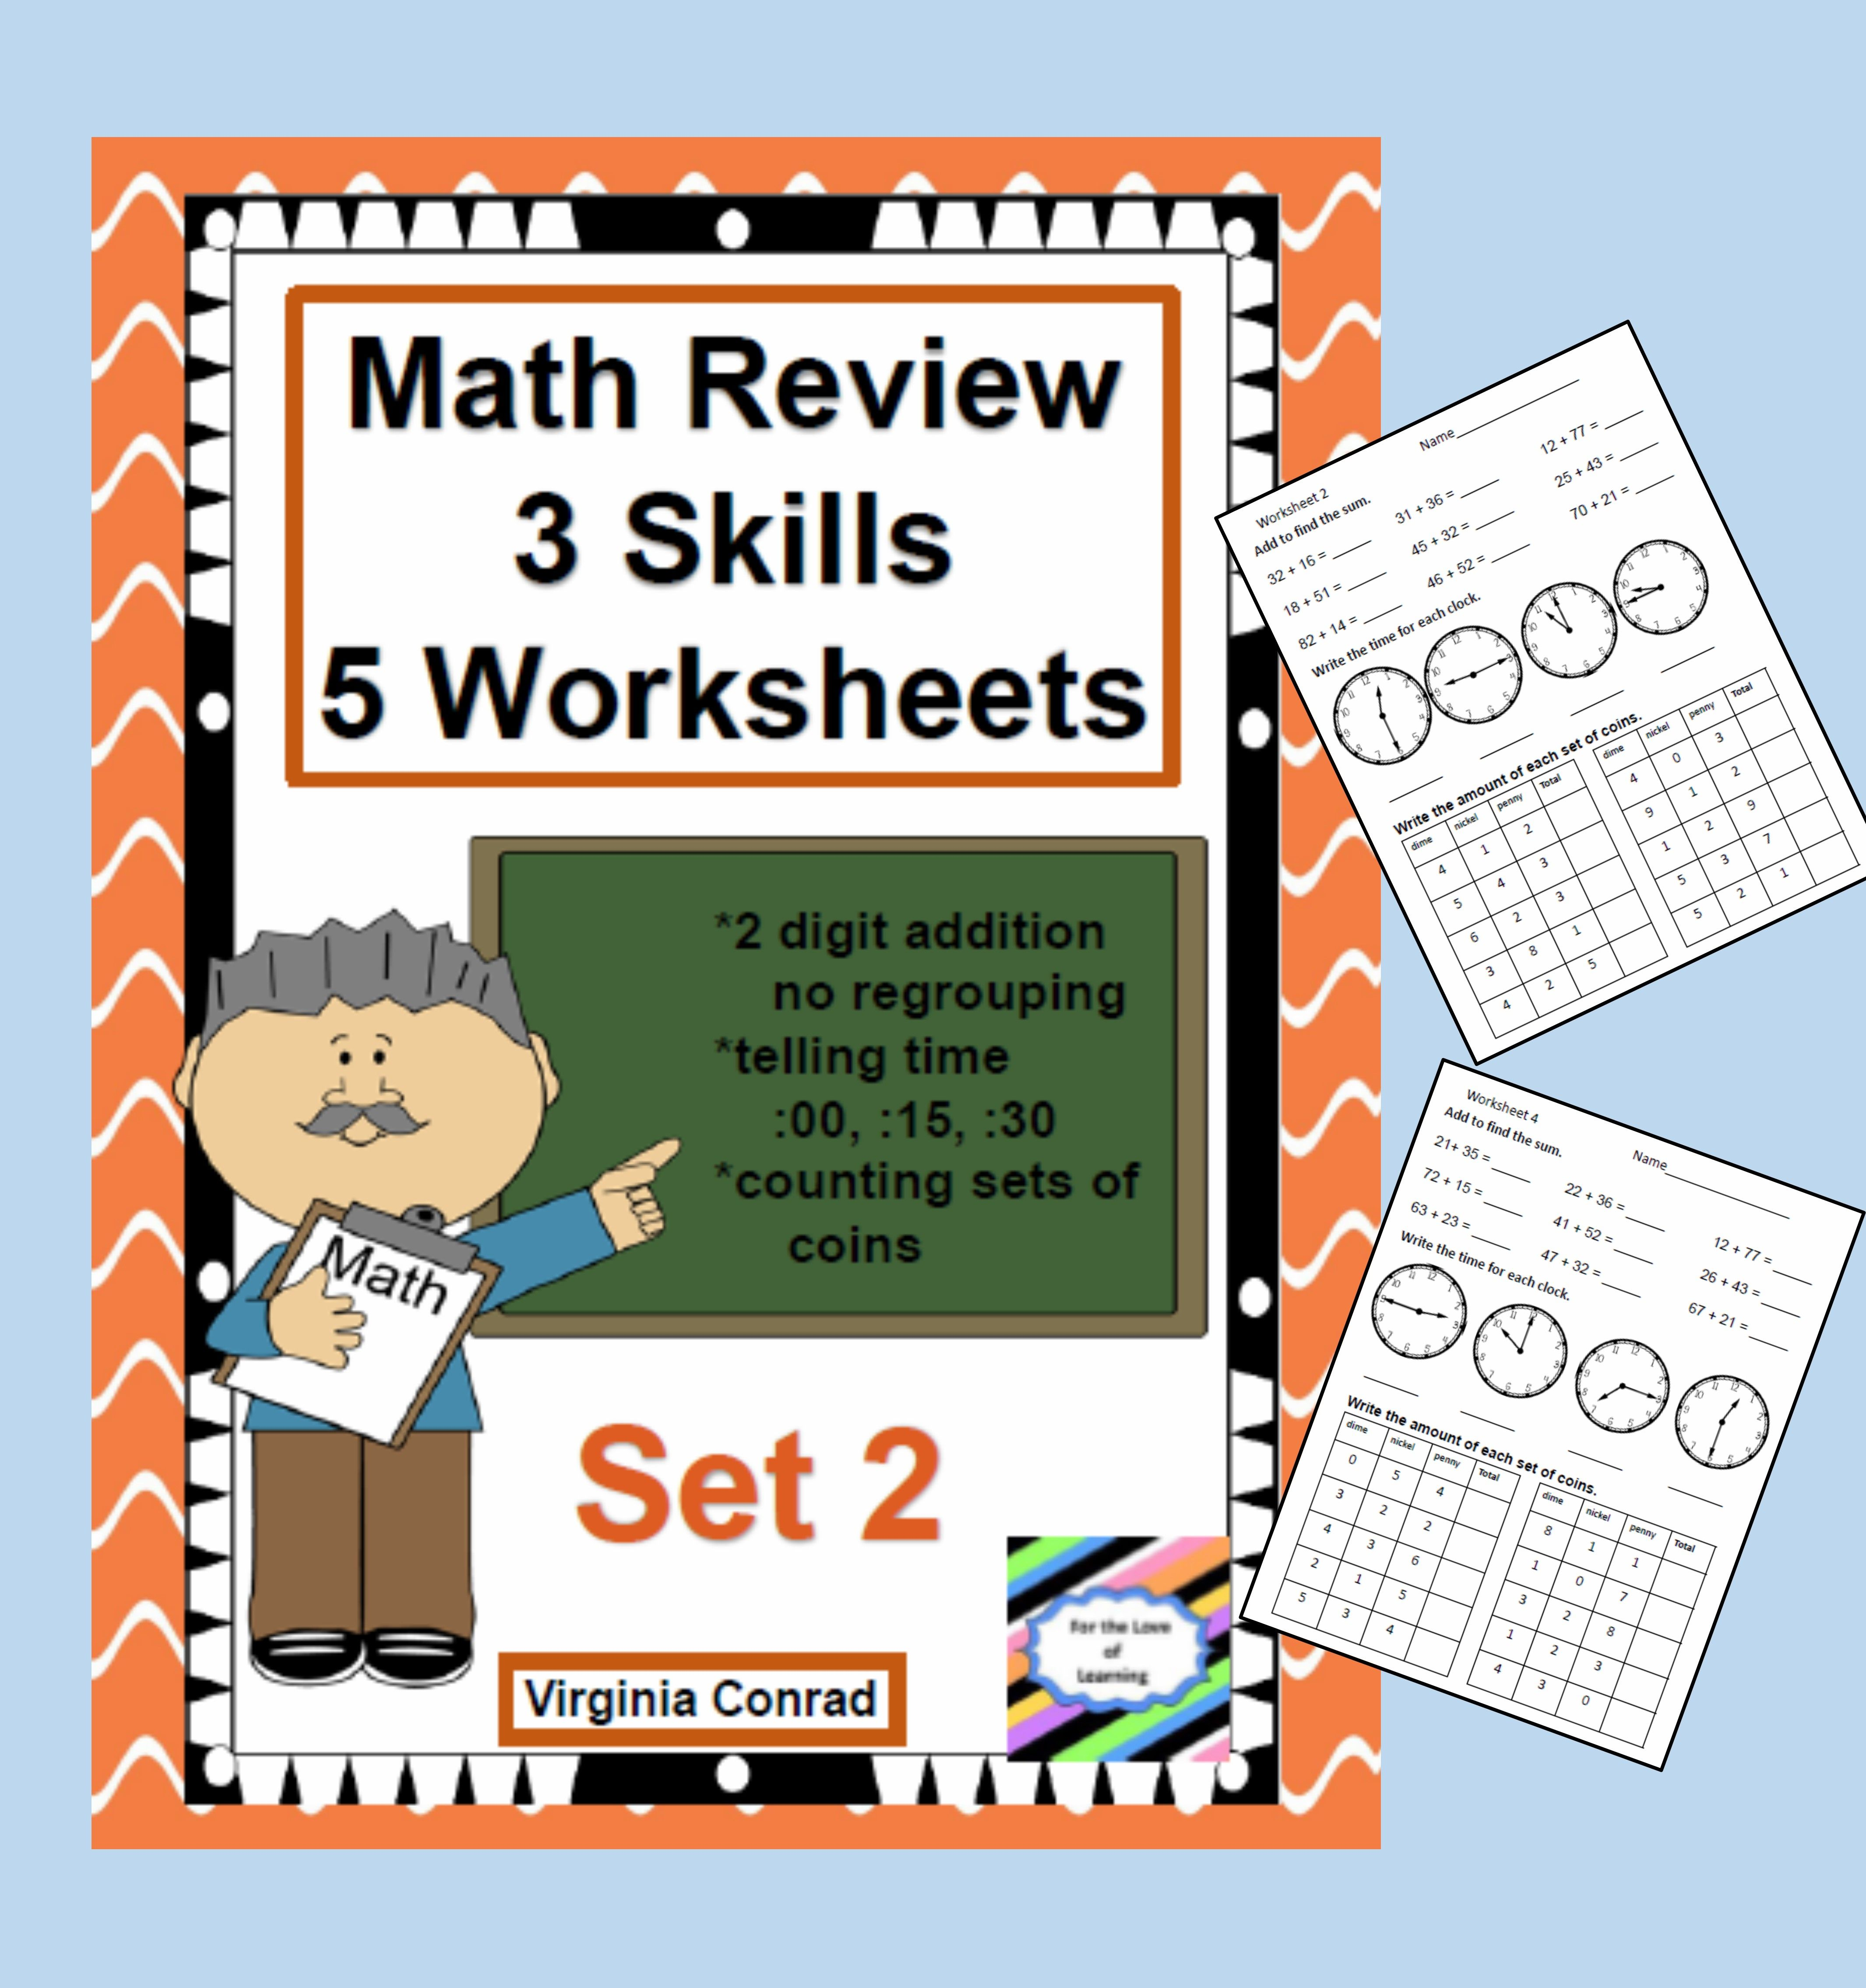 Math Review Worksheets 3 Skills For 5 Days Set 2